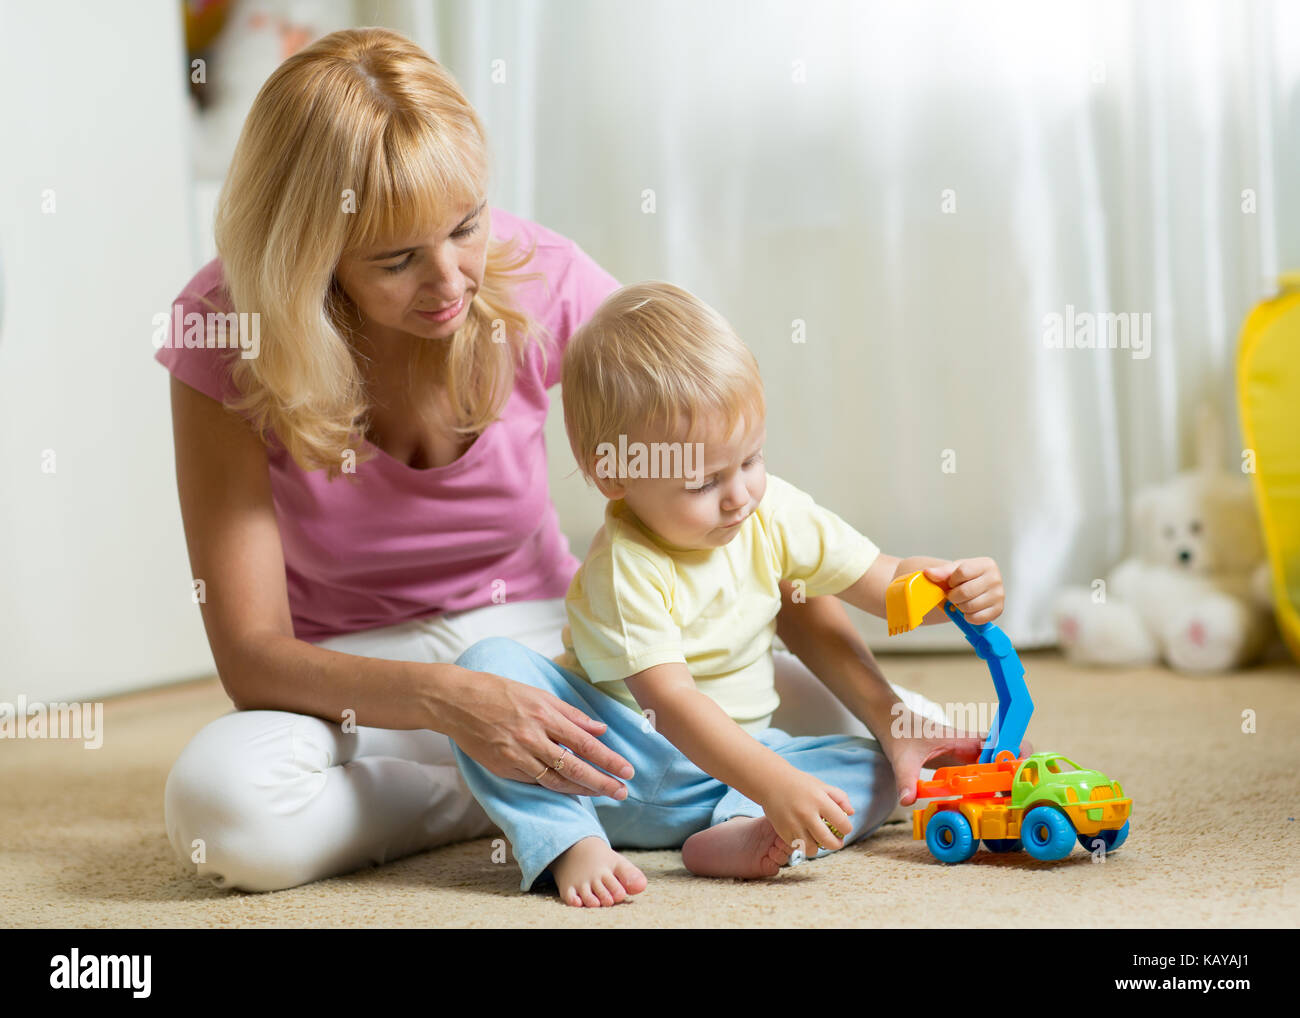 Childtoddler playing car toy in his room or nursery - Stock Image